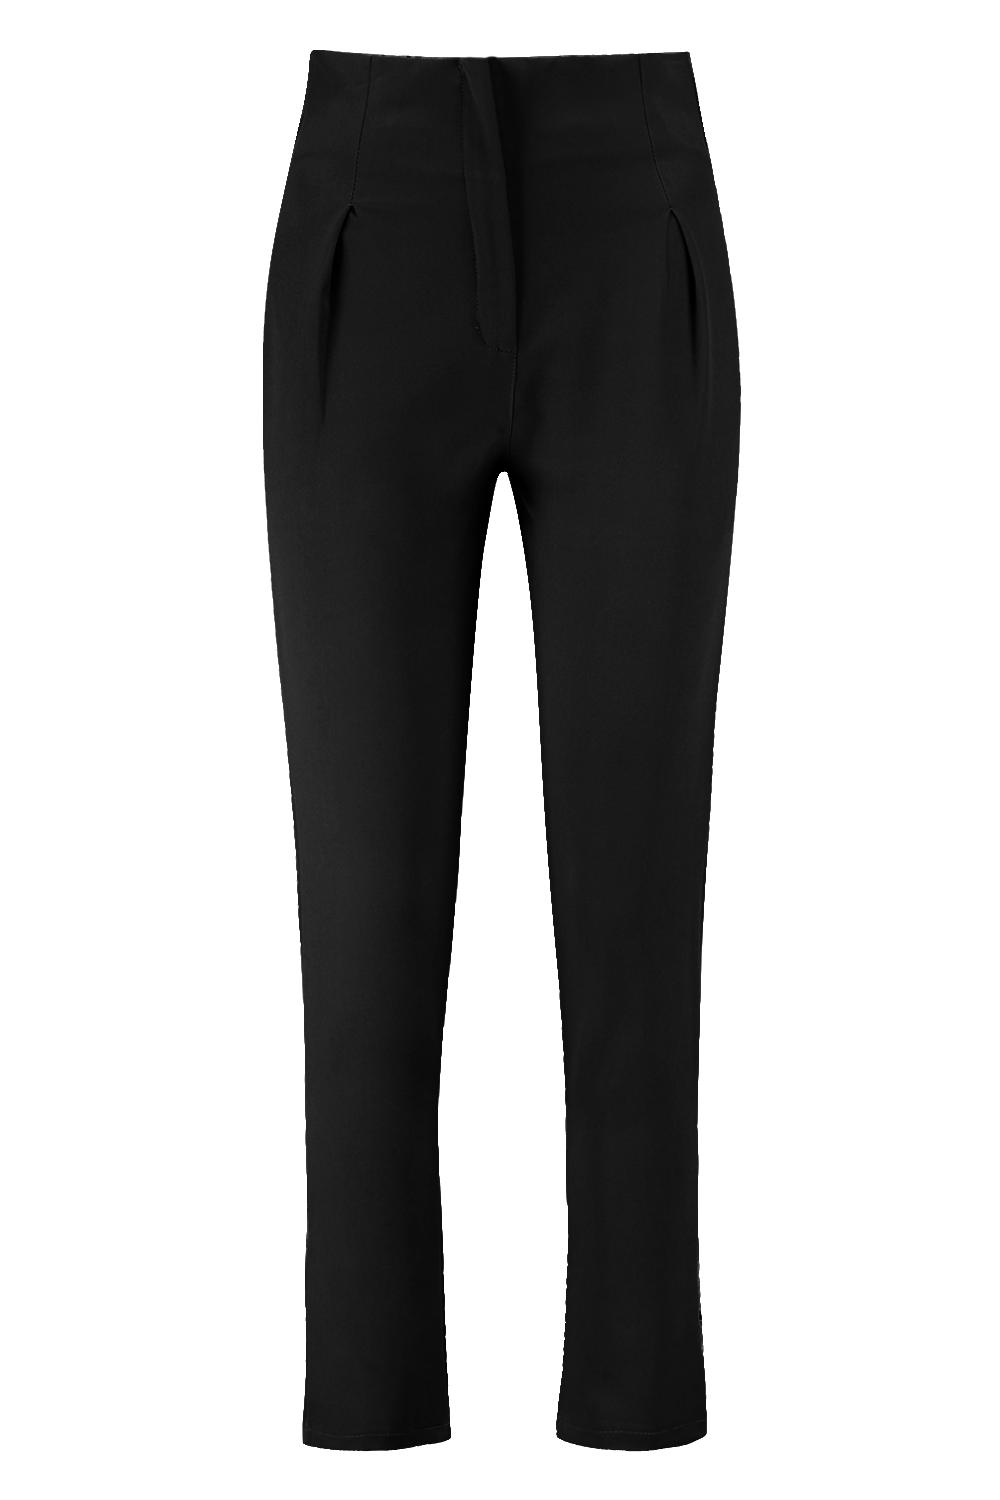 Tapered Trouser Woven black Trouser Tapered Pleated Pleated Woven da8nOqdTw